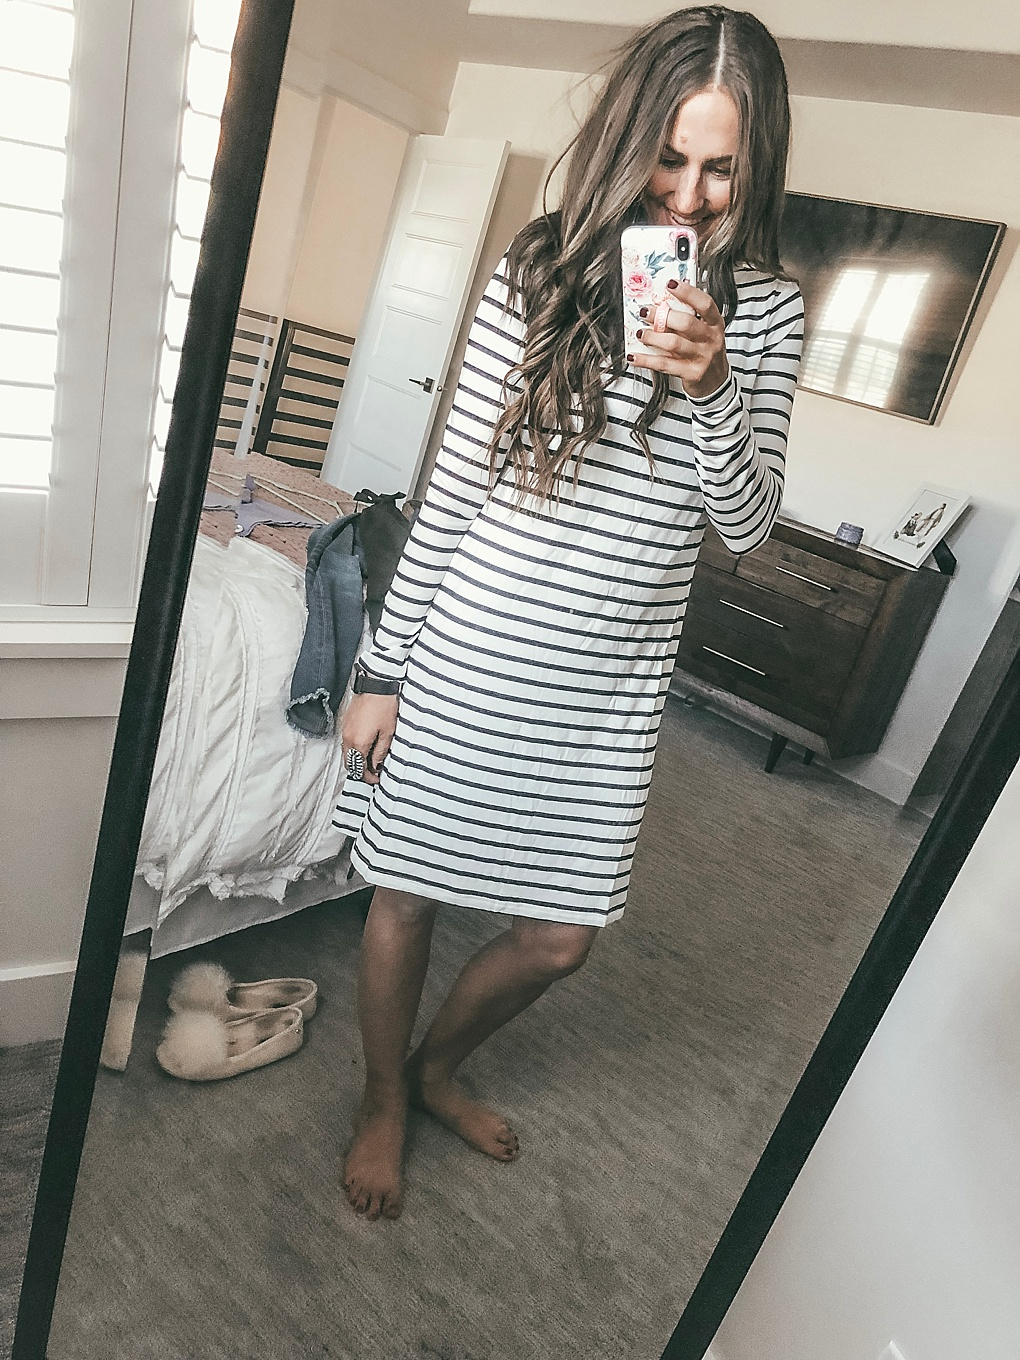 Looking for the best fashion under $50? Utah Style Blogger Dani Marie is sharing her top Amazon Fashion Finds UNDER $50 that you need to see ASAP!